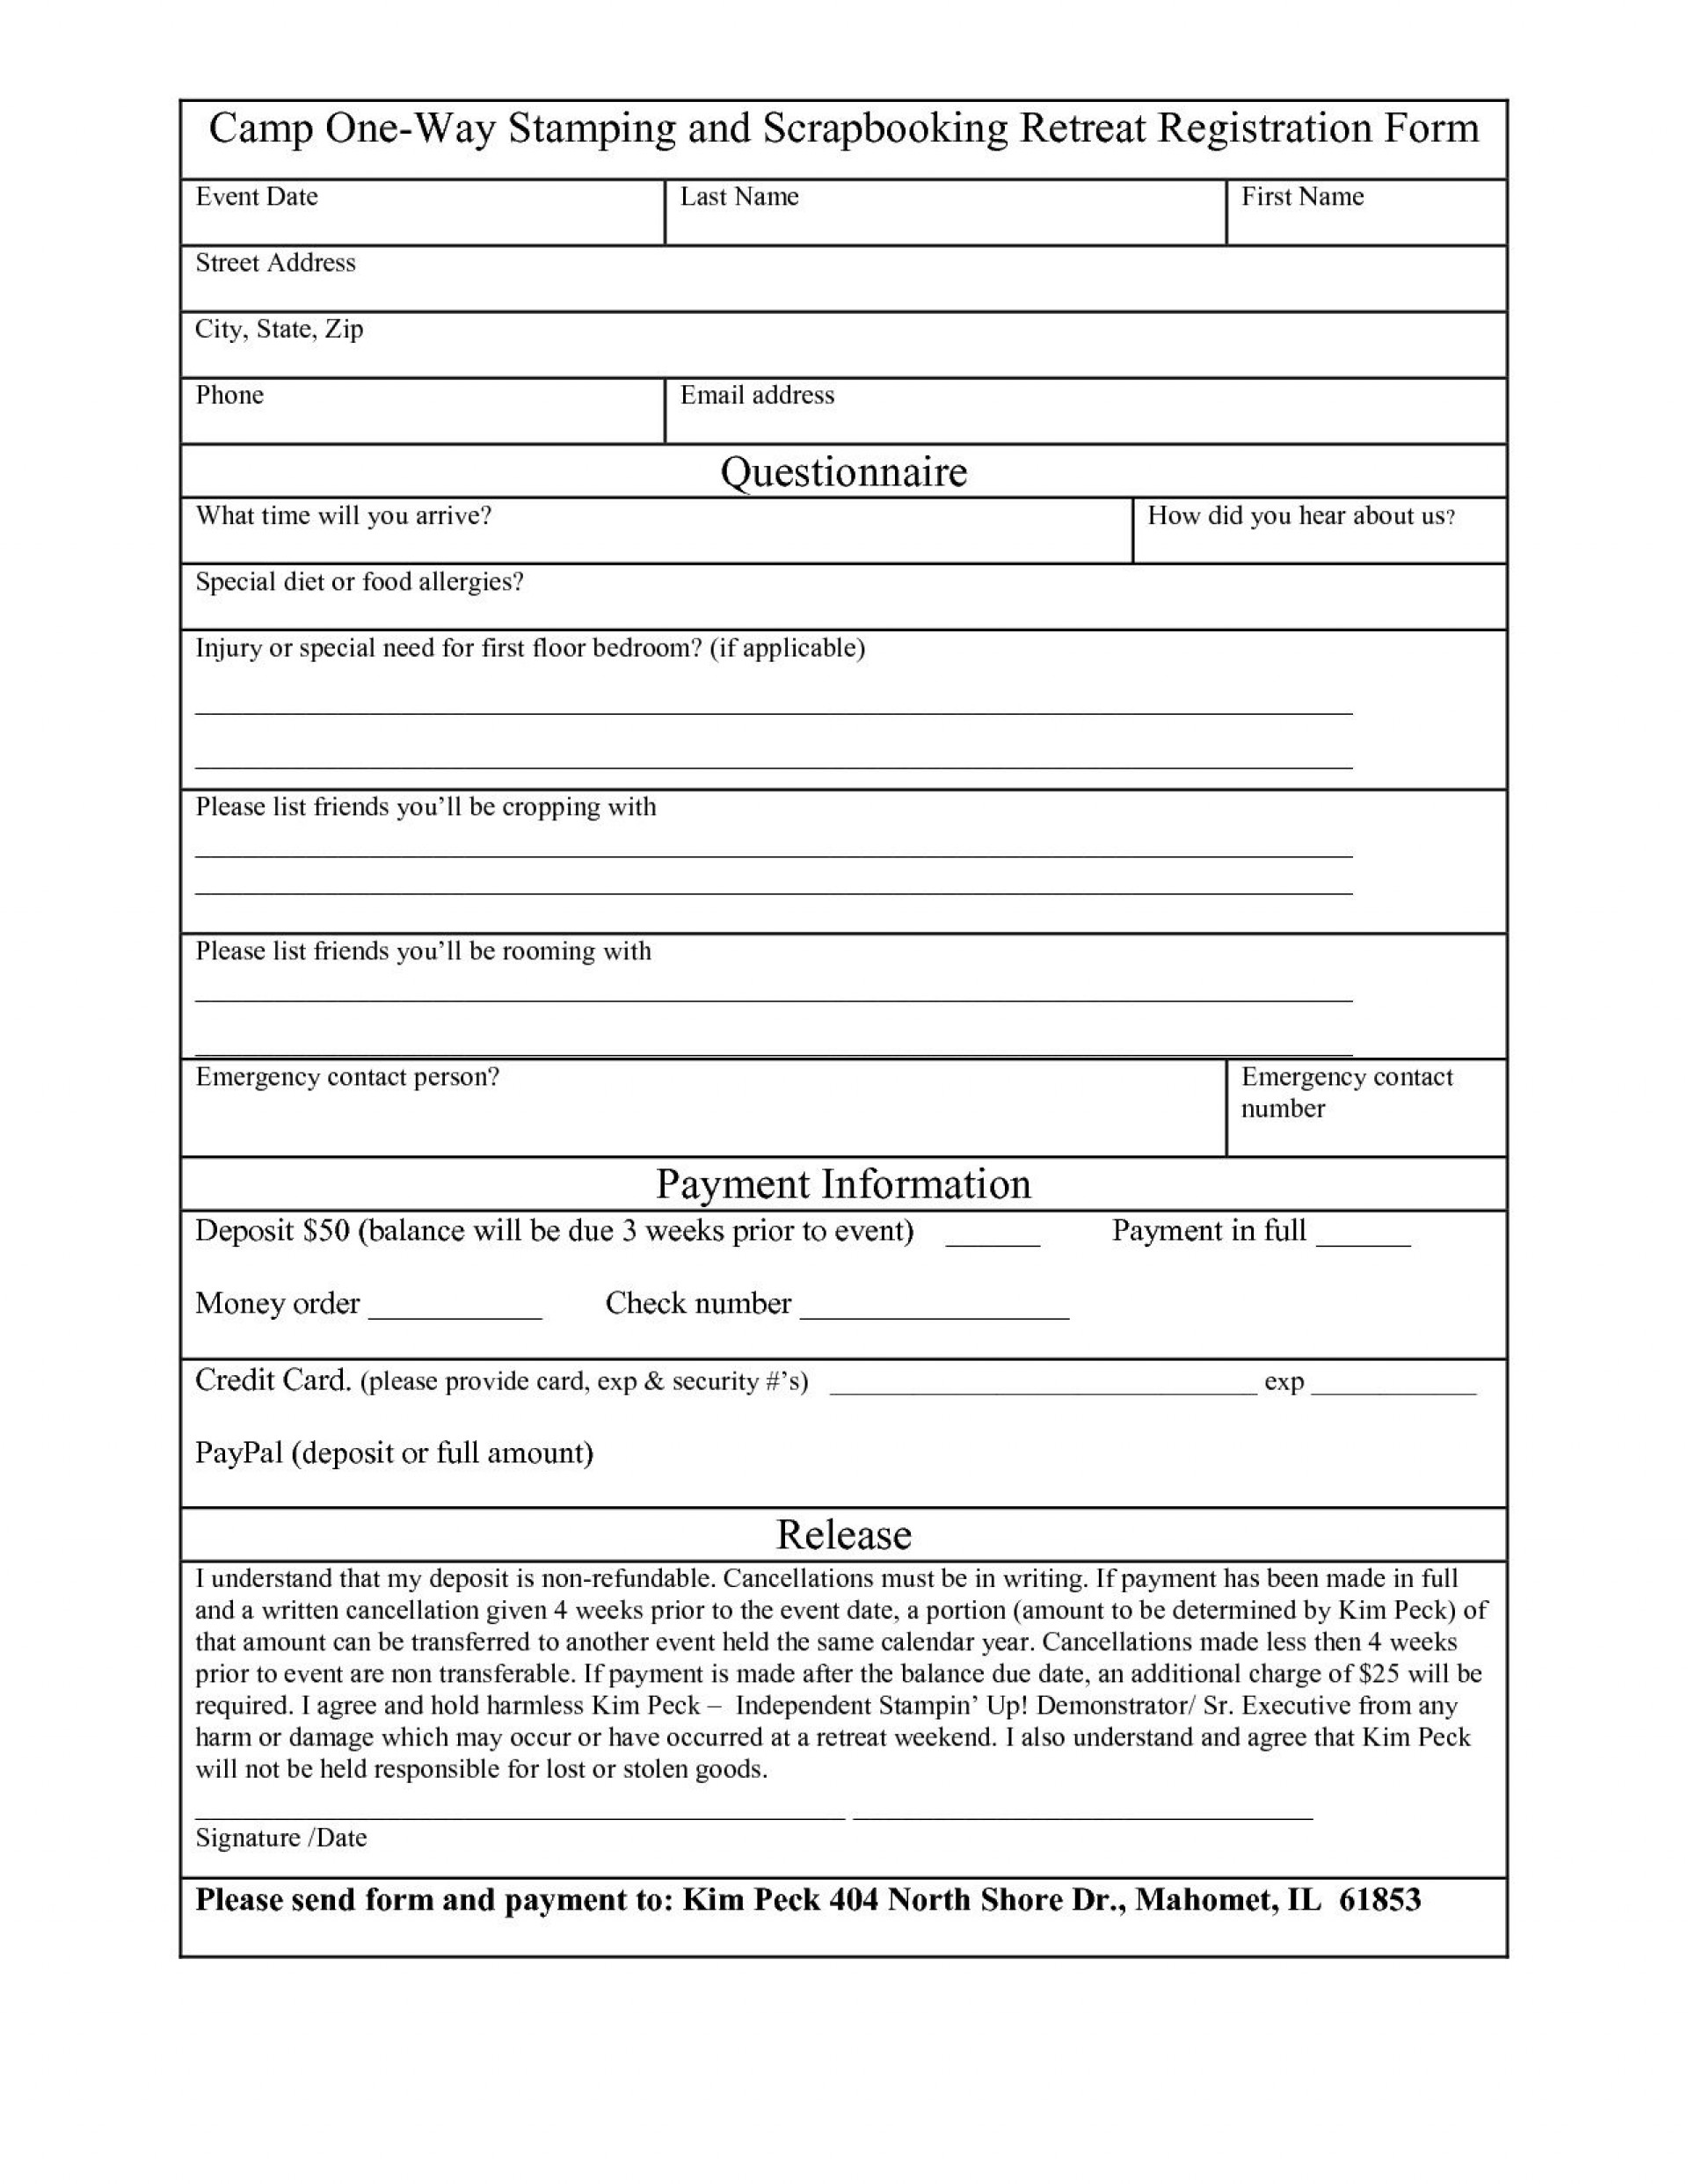 003 Magnificent Registration Form Template Word Concept  Conference Free1920